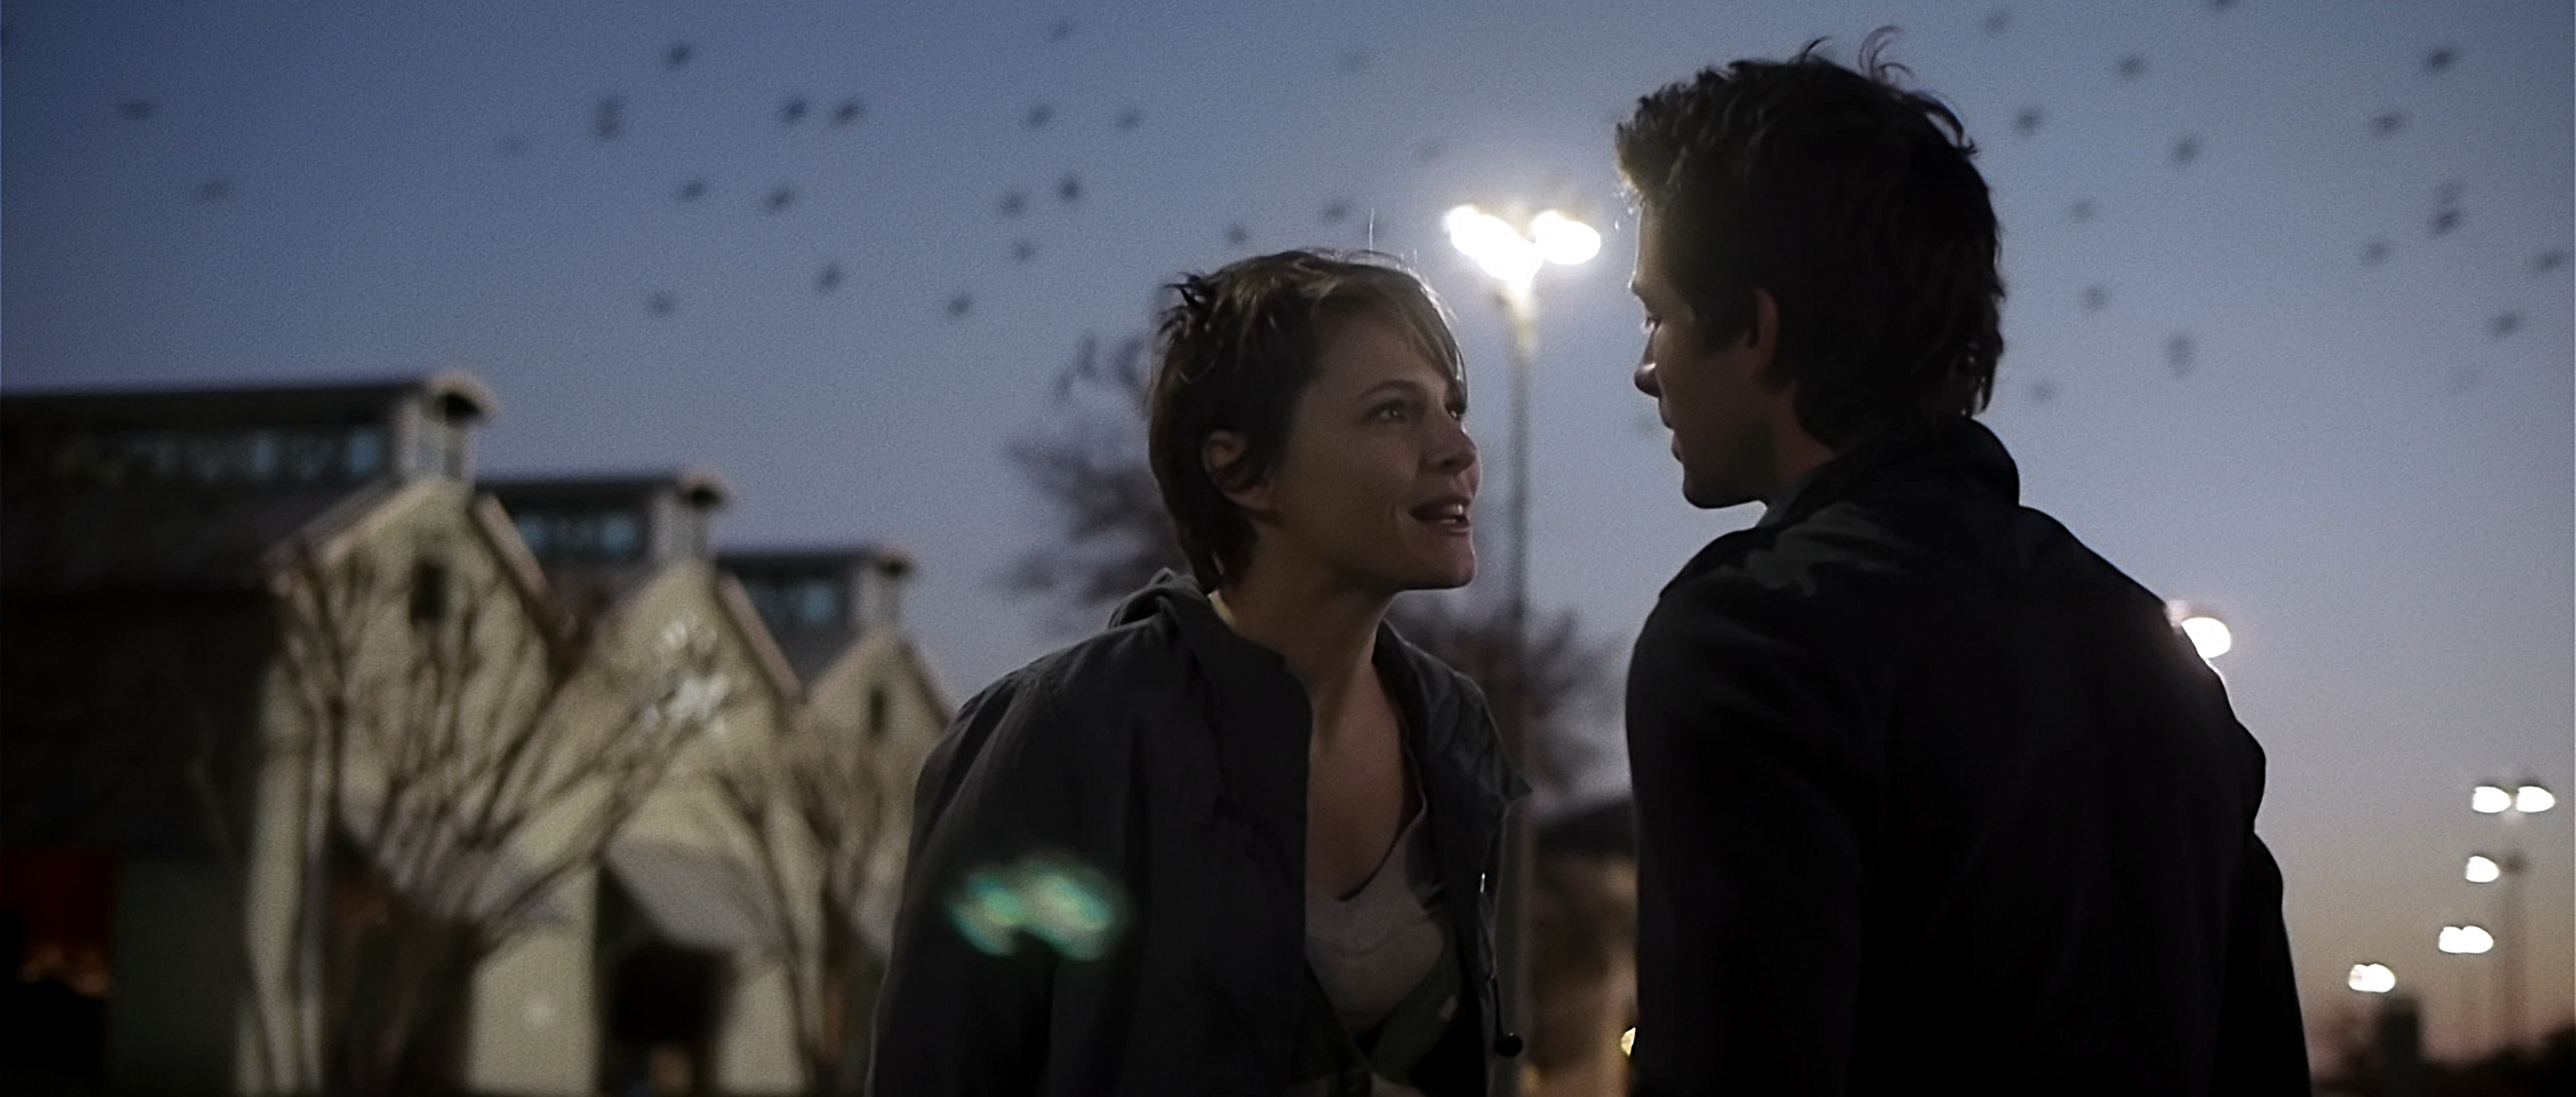 amy-seimetz-shane-carruth-upstream-color